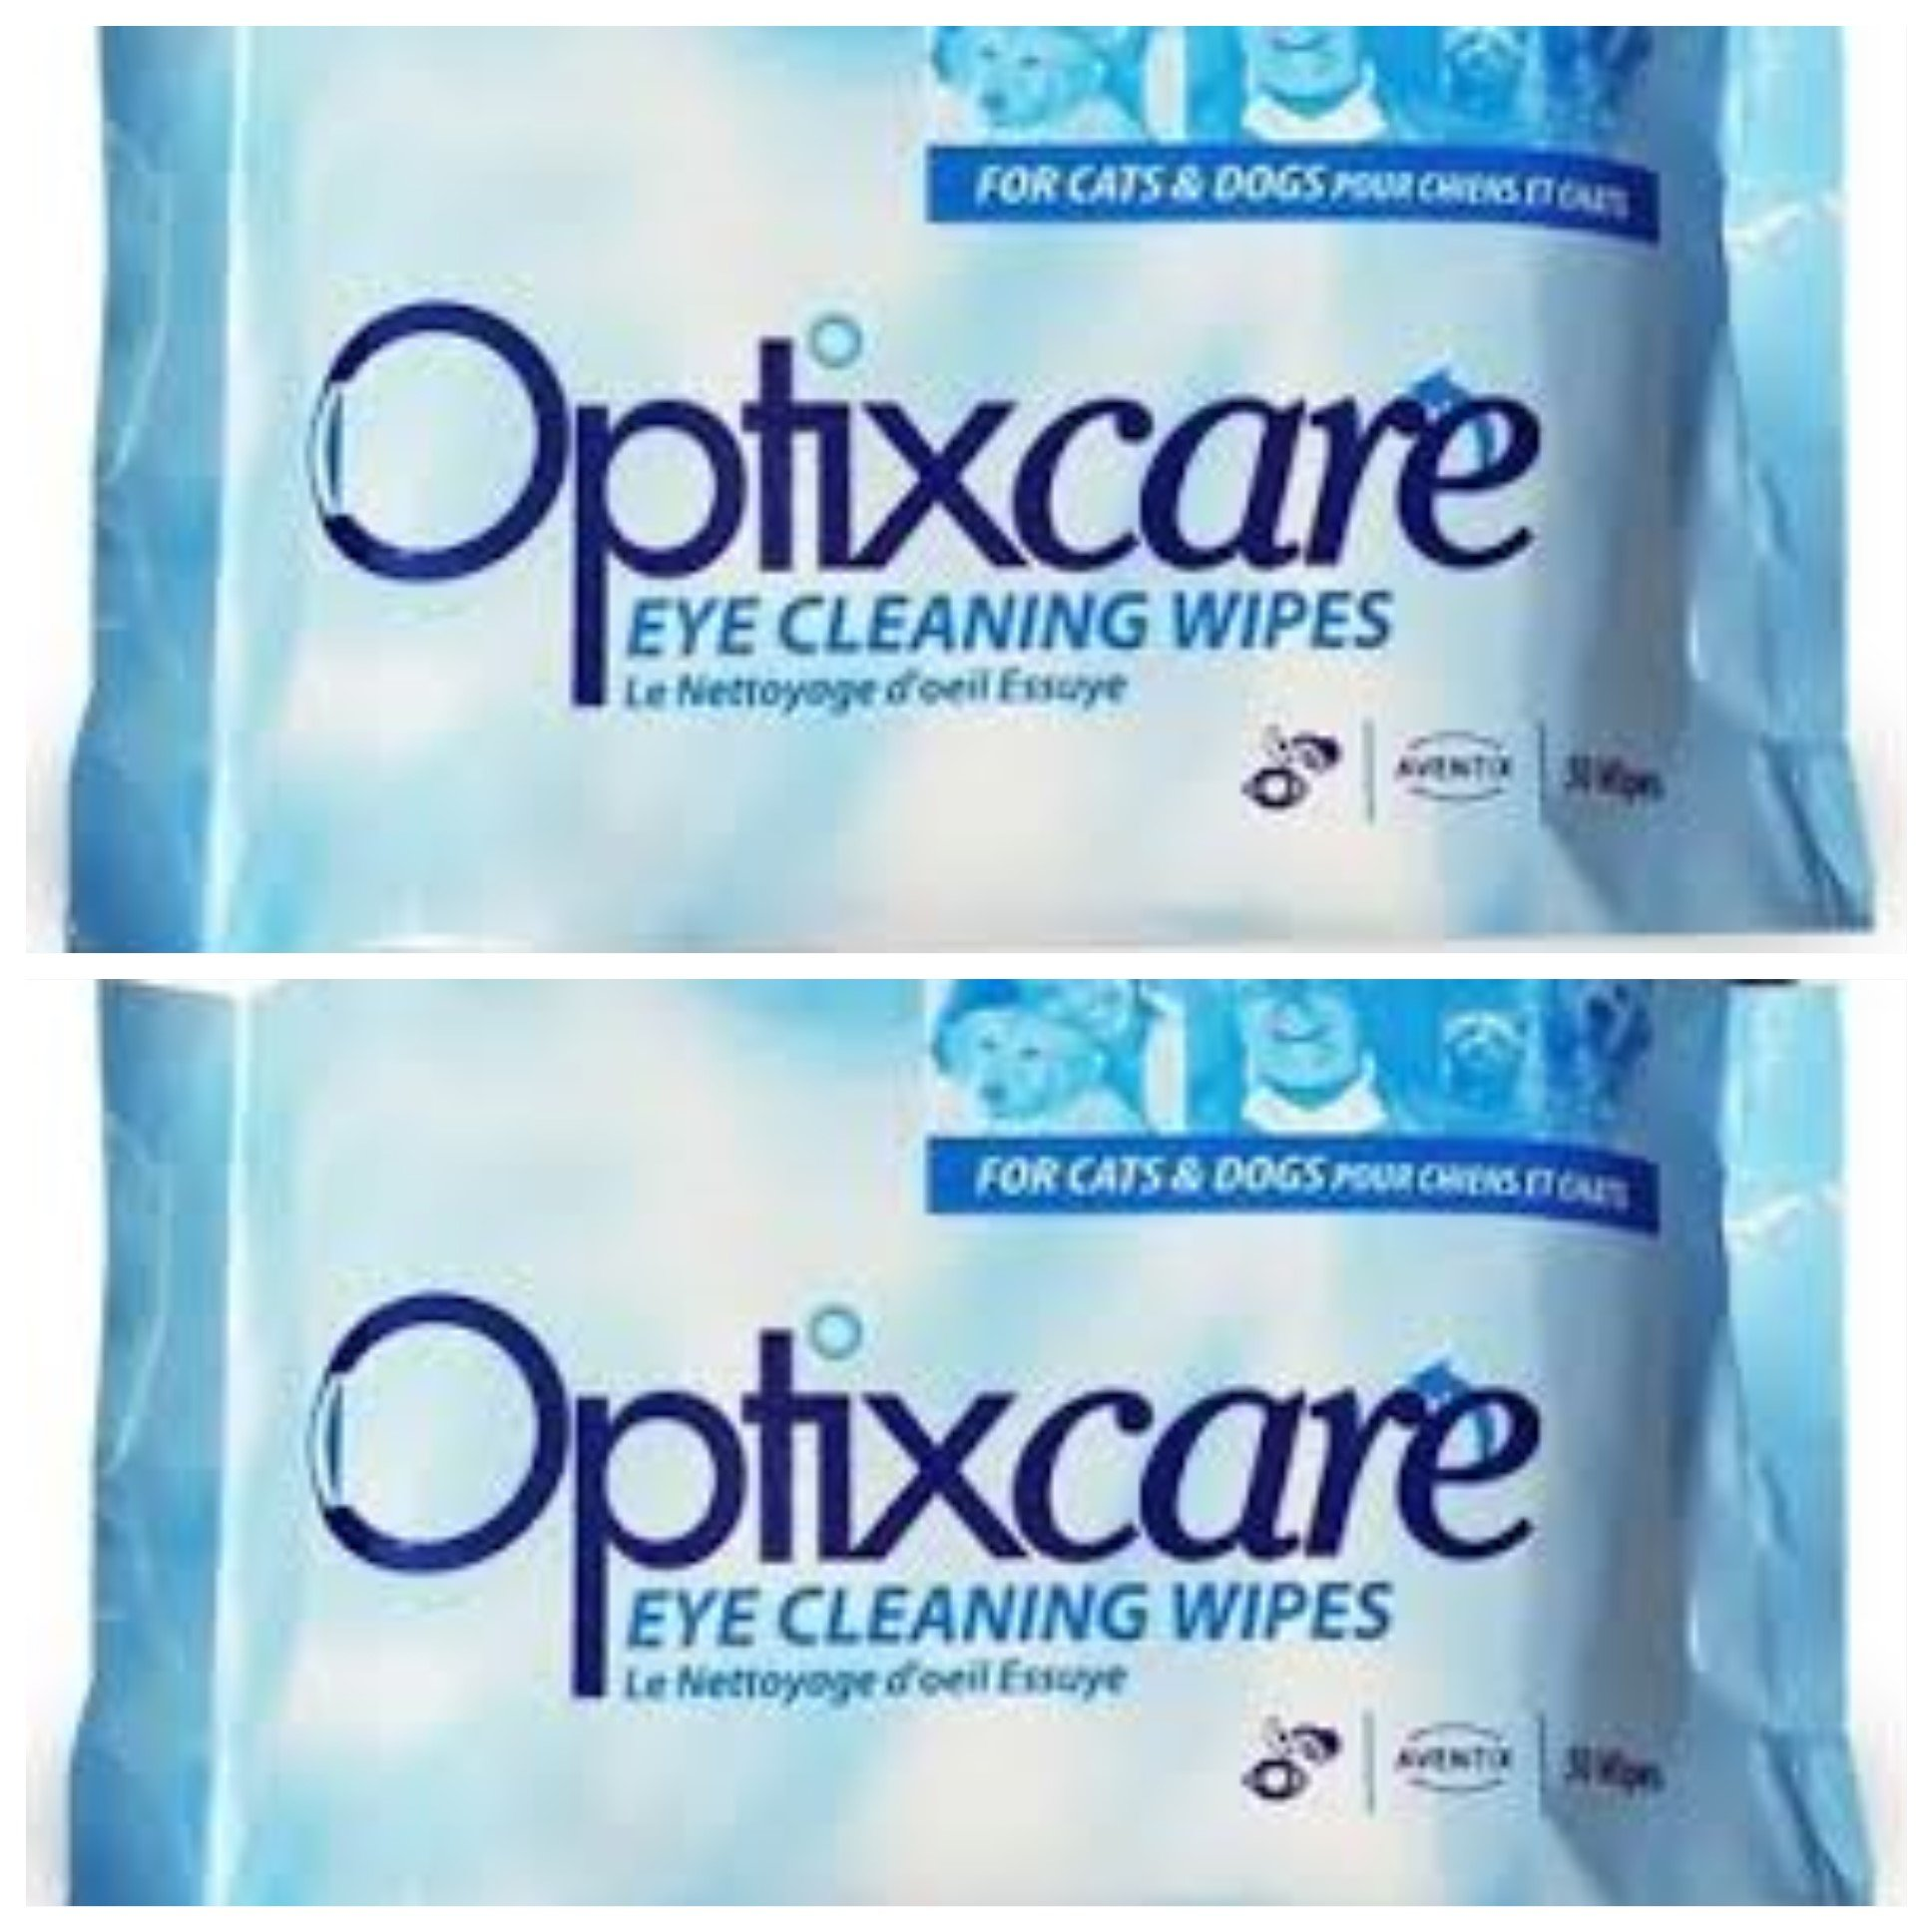 OptixCare Eye Cleaning Wipes (50 count), 2 Pack